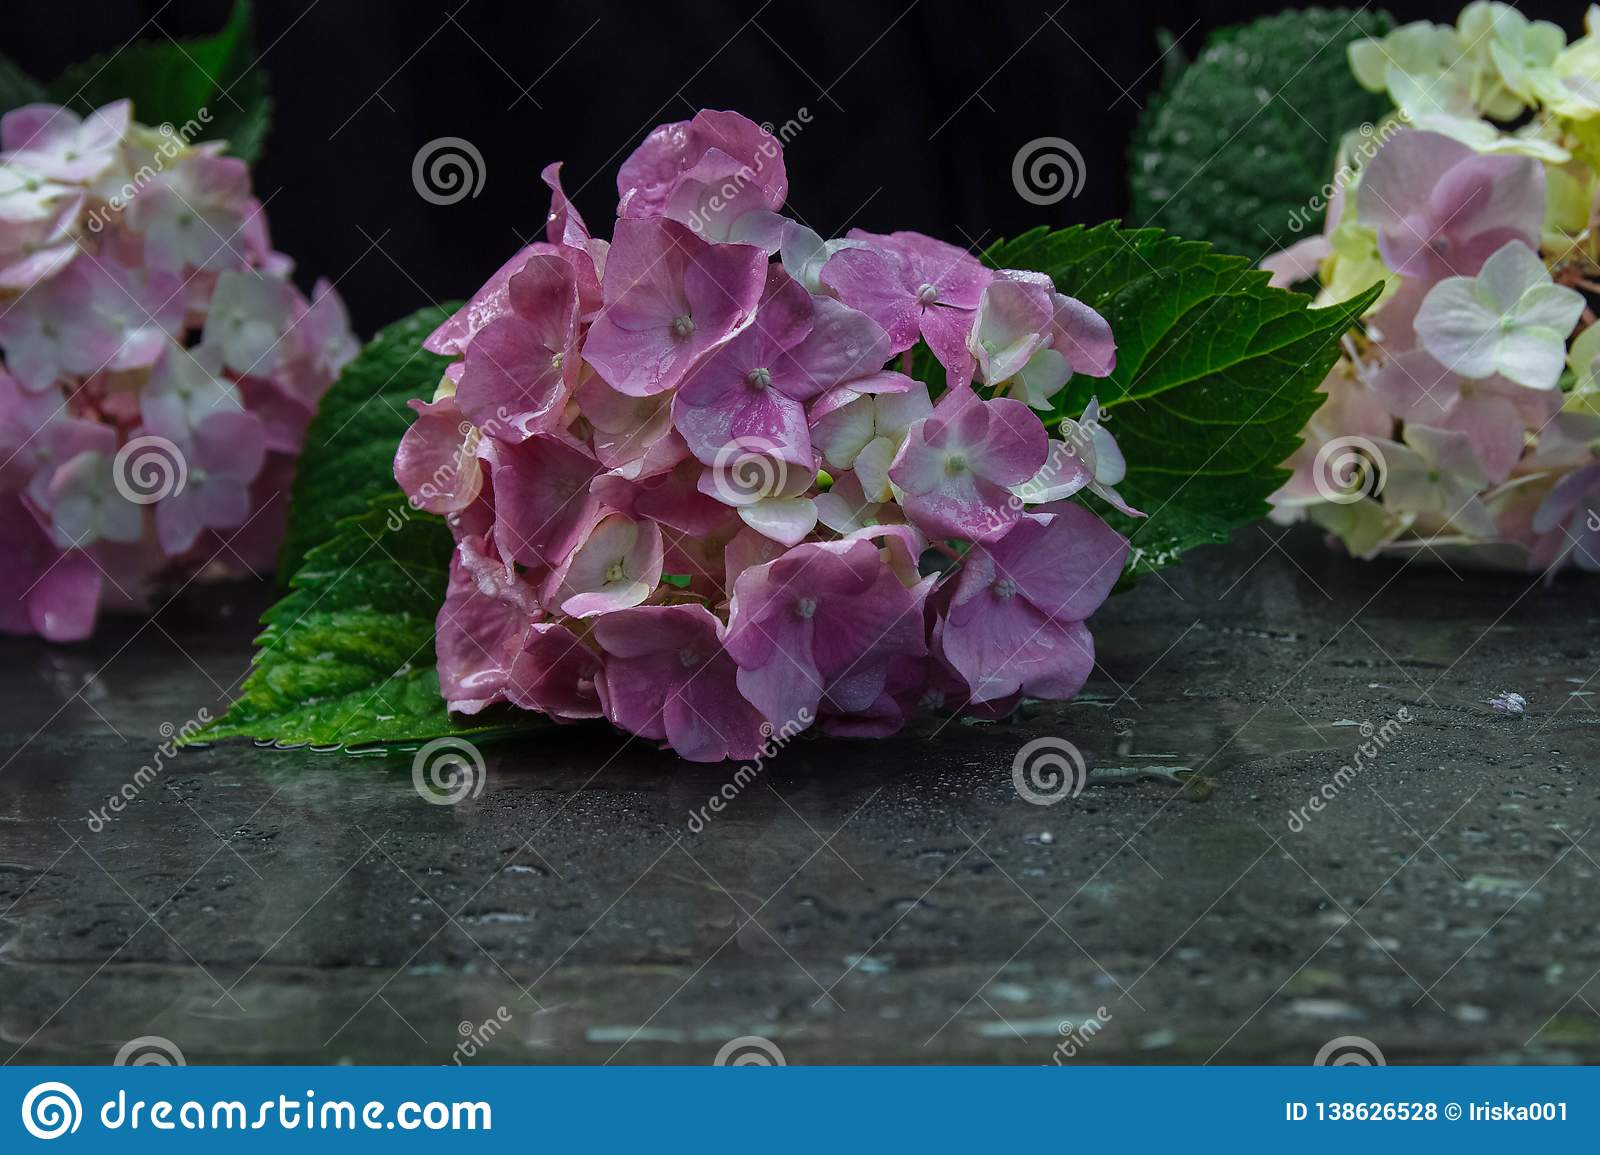 Hydrangea with reflection and water drops